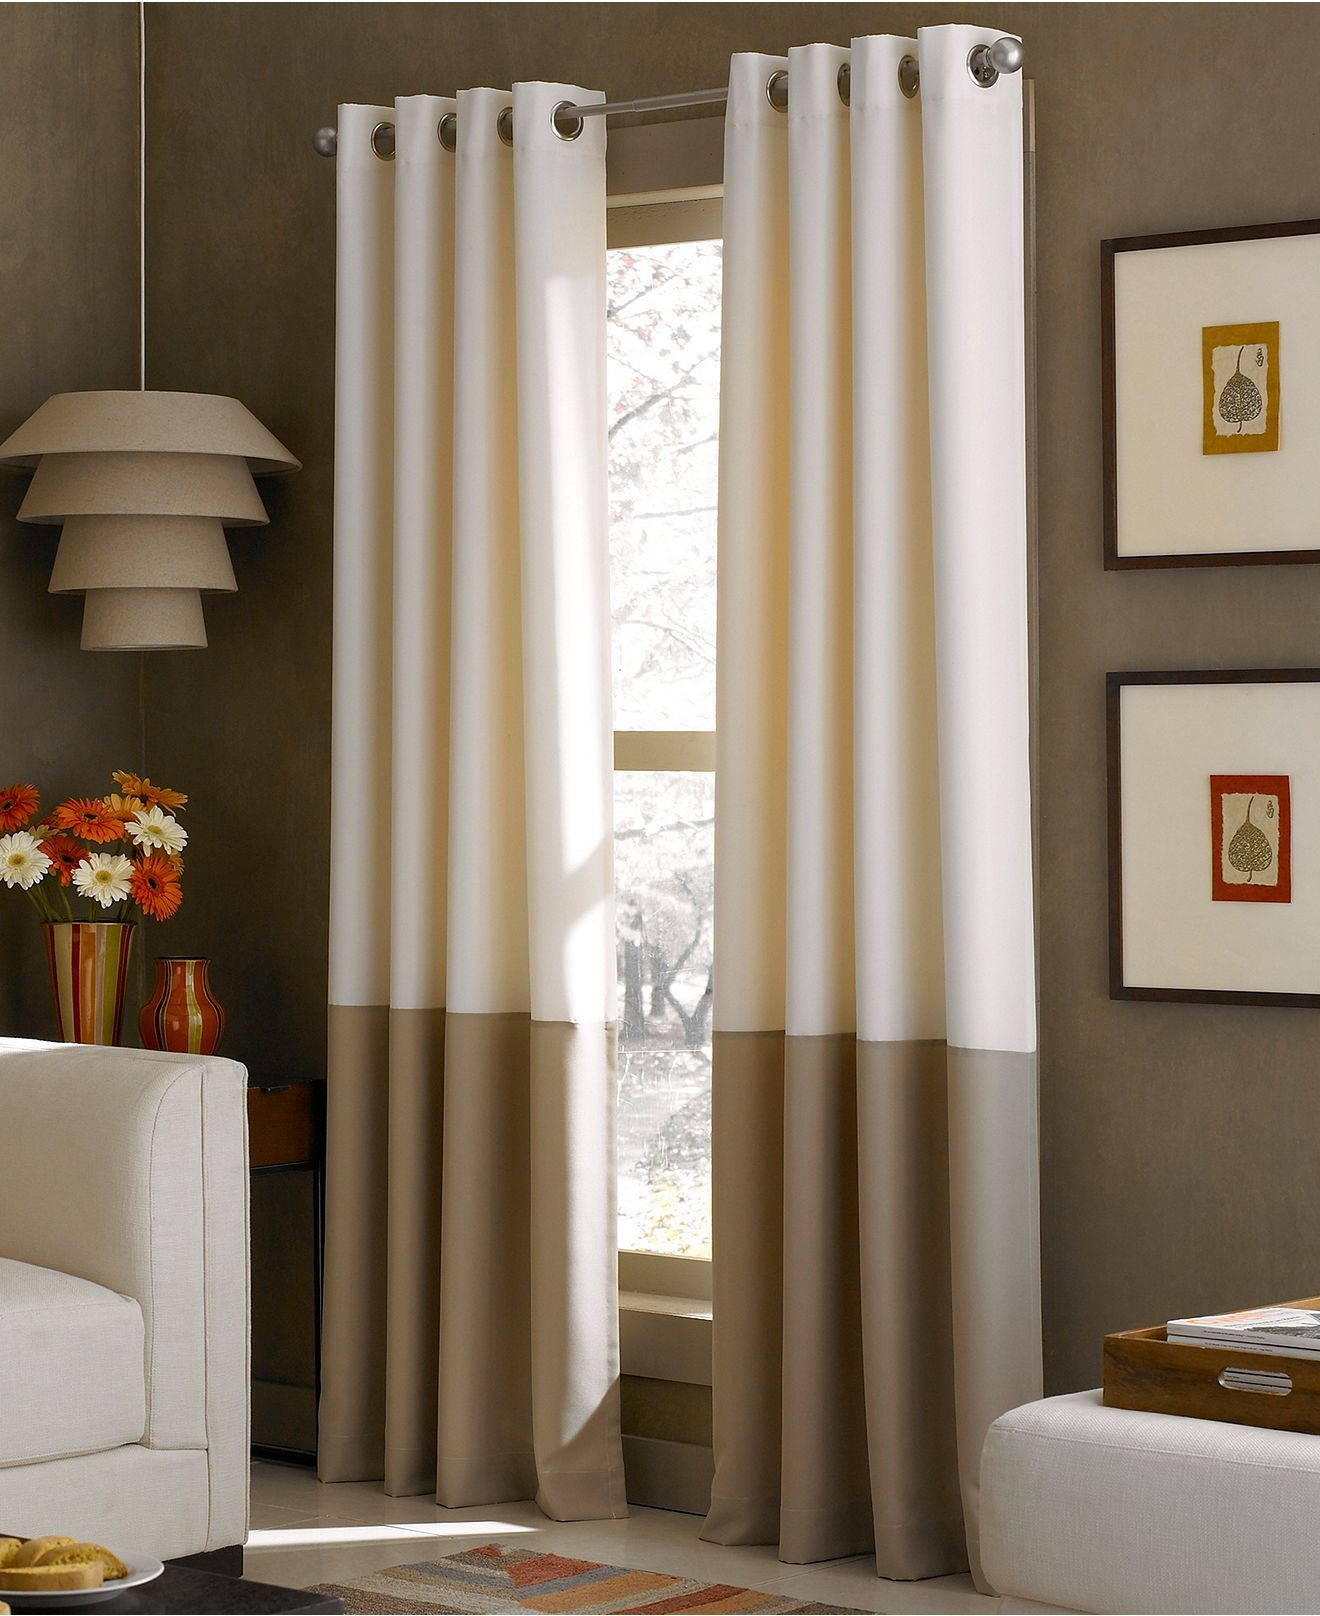 long home short windows on design or curtains for ideas bay window